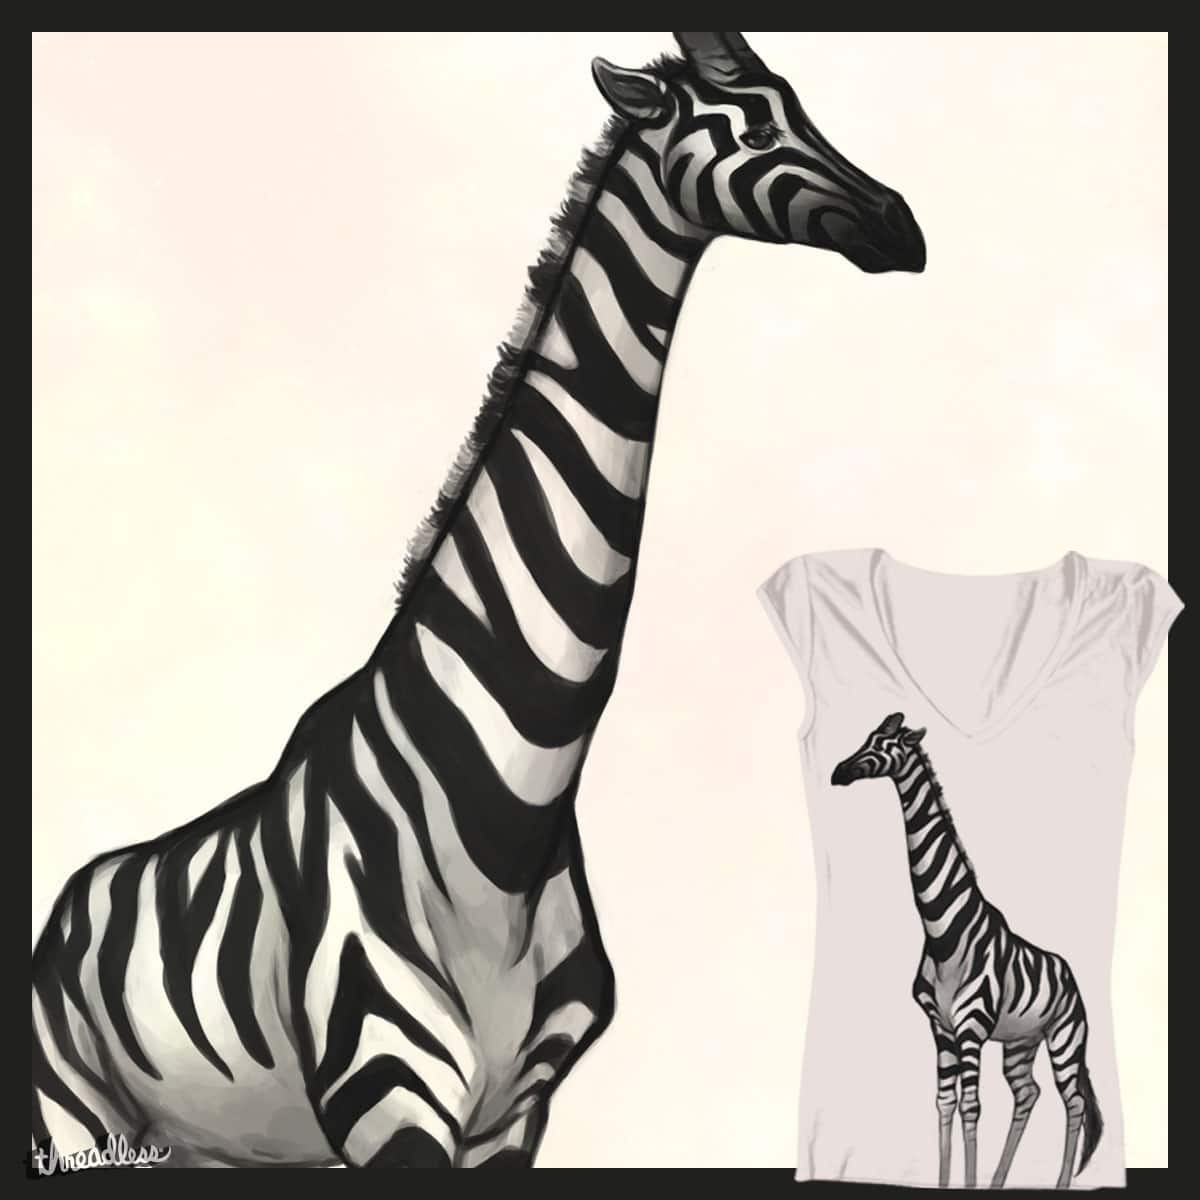 A Very Strange Zebra by Shtuts on Threadless